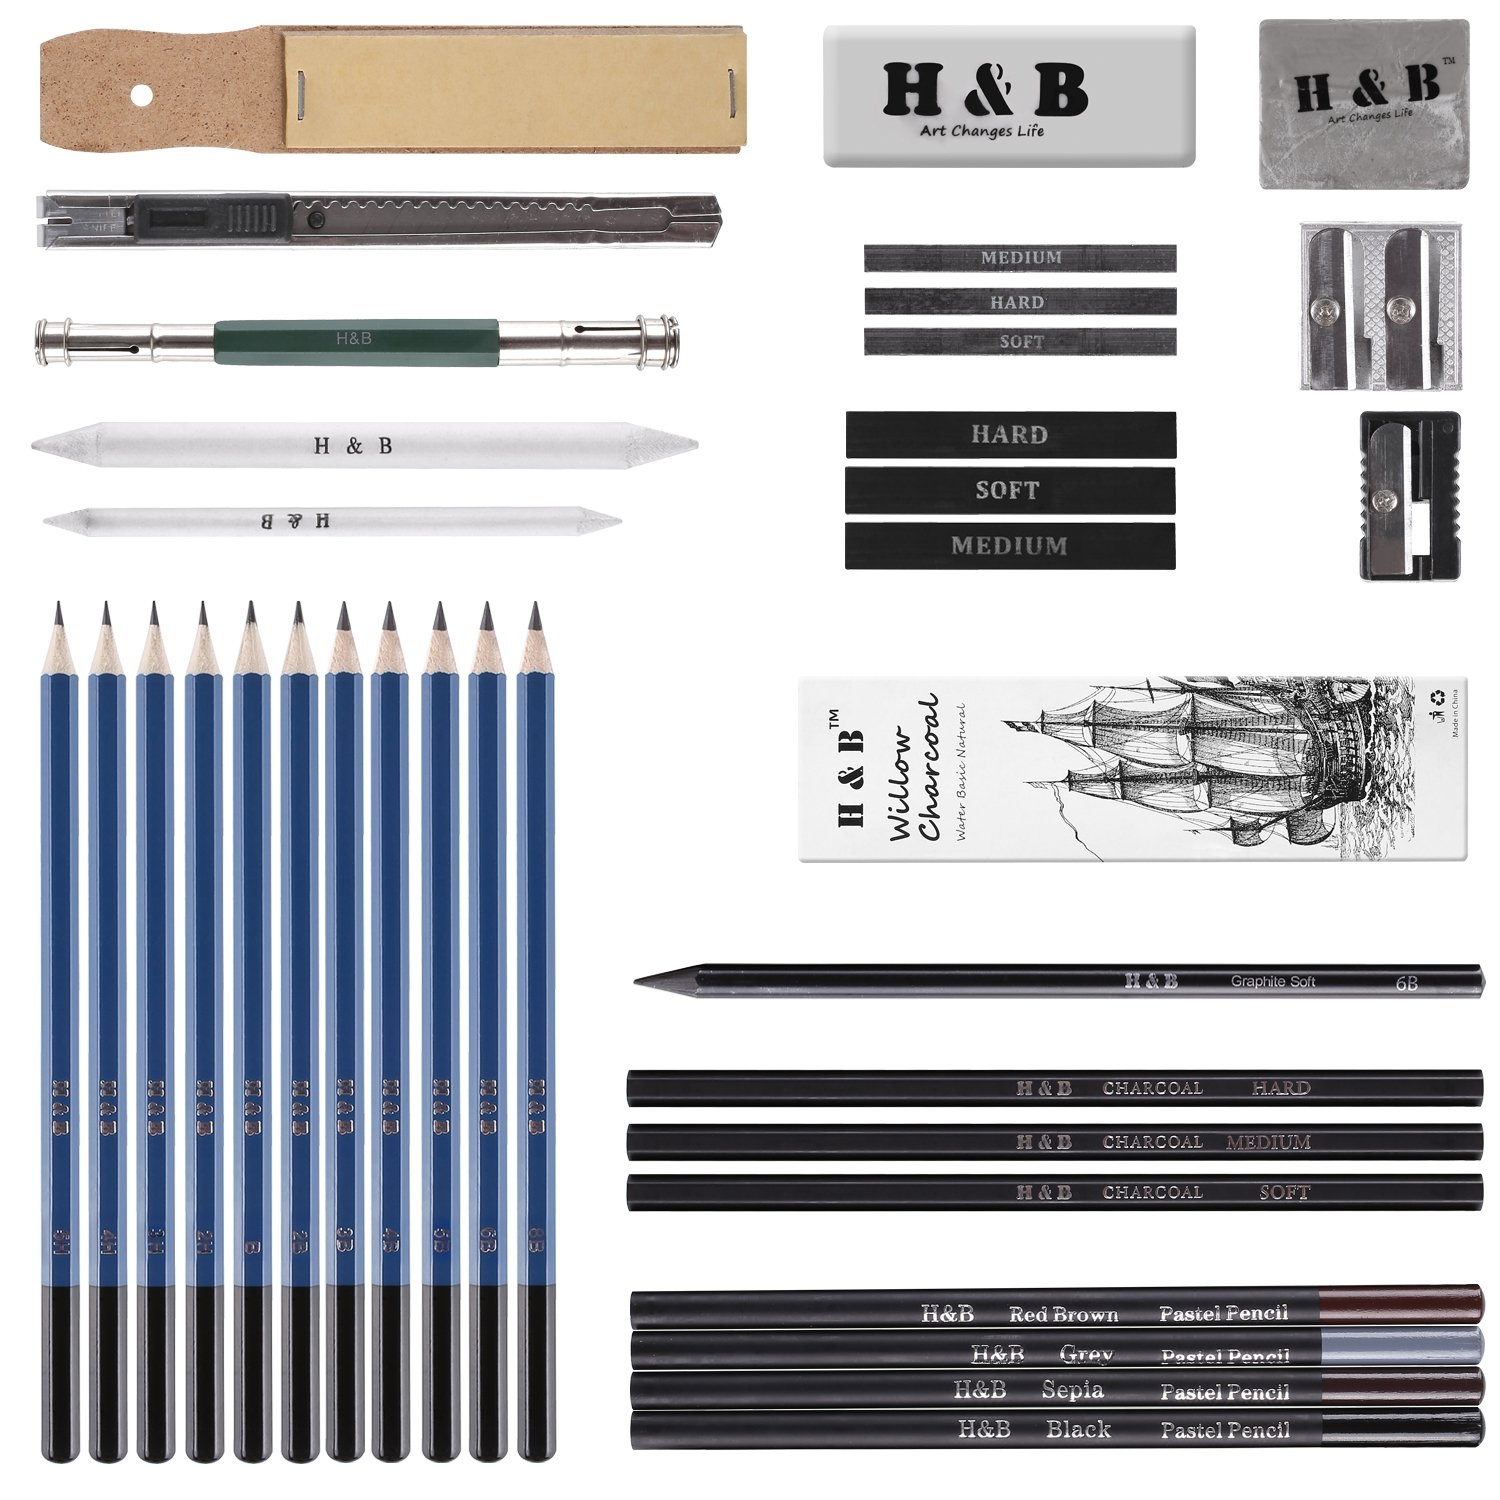 FEMOR Sketching/Drawing Pencils Set, 40 Pieces Sketching Art Kit with Sketch/Graphite Pencils, Erasers, Kit Bag, Ideal Gift for Kids and Painting Amateurs by femor (Image #2)